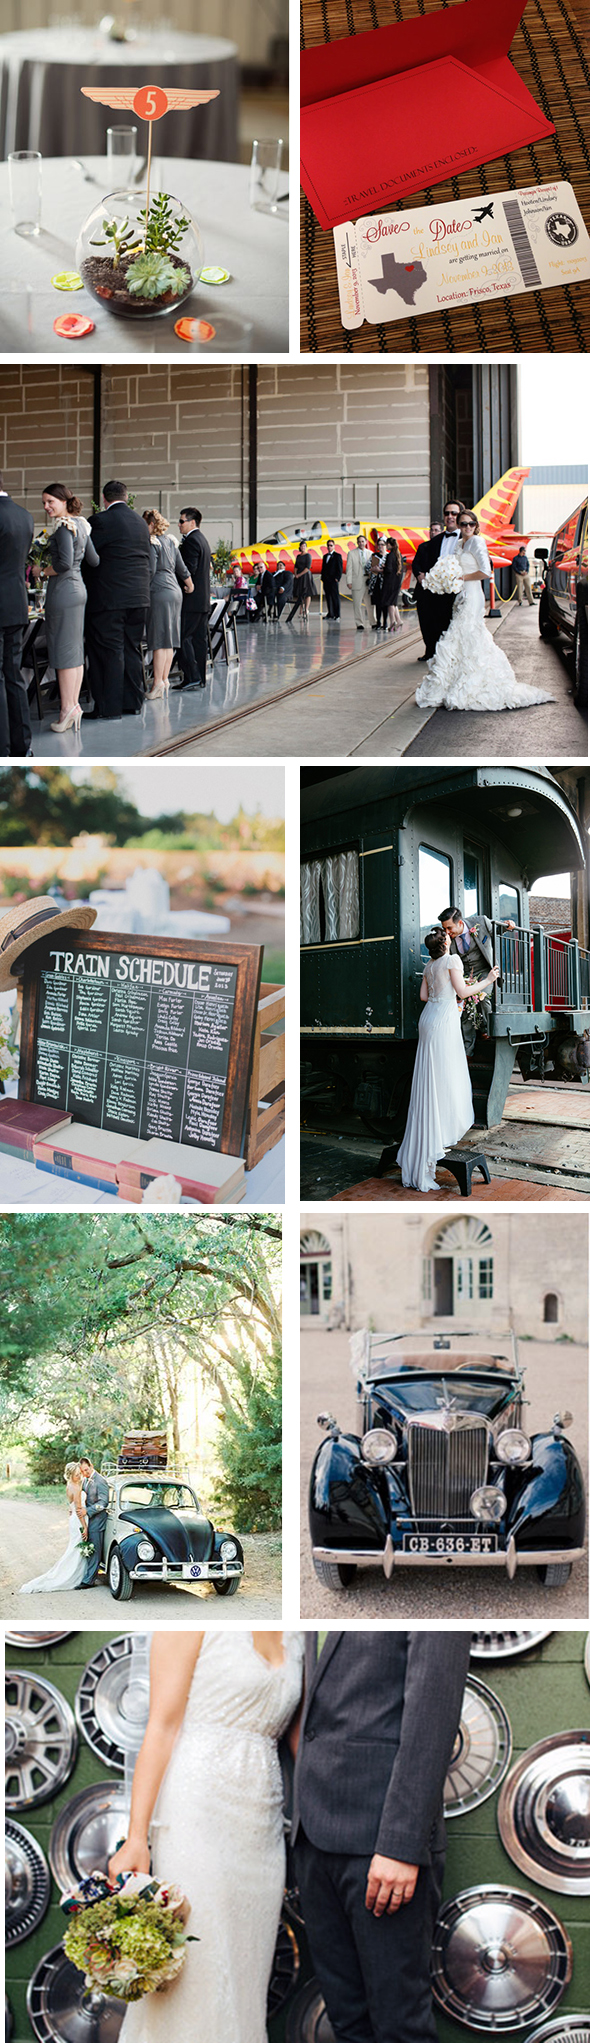 planes, trains, and automobile weddings